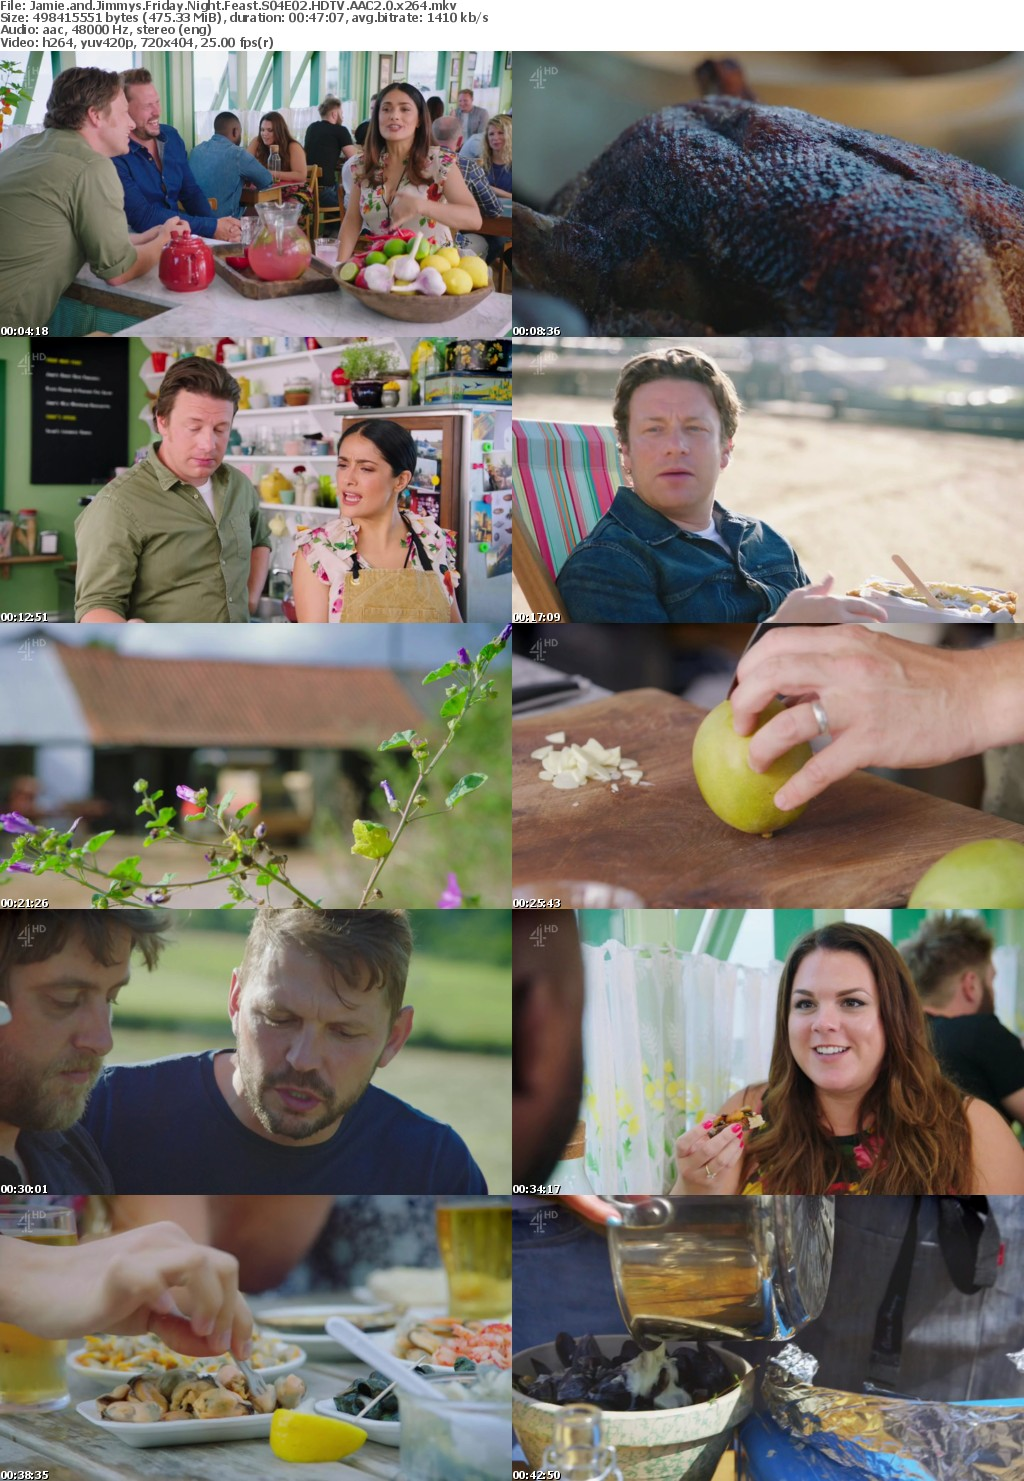 Jamie and Jimmys Friday Night Feast S04E02 HDTV AAC2 0 x264